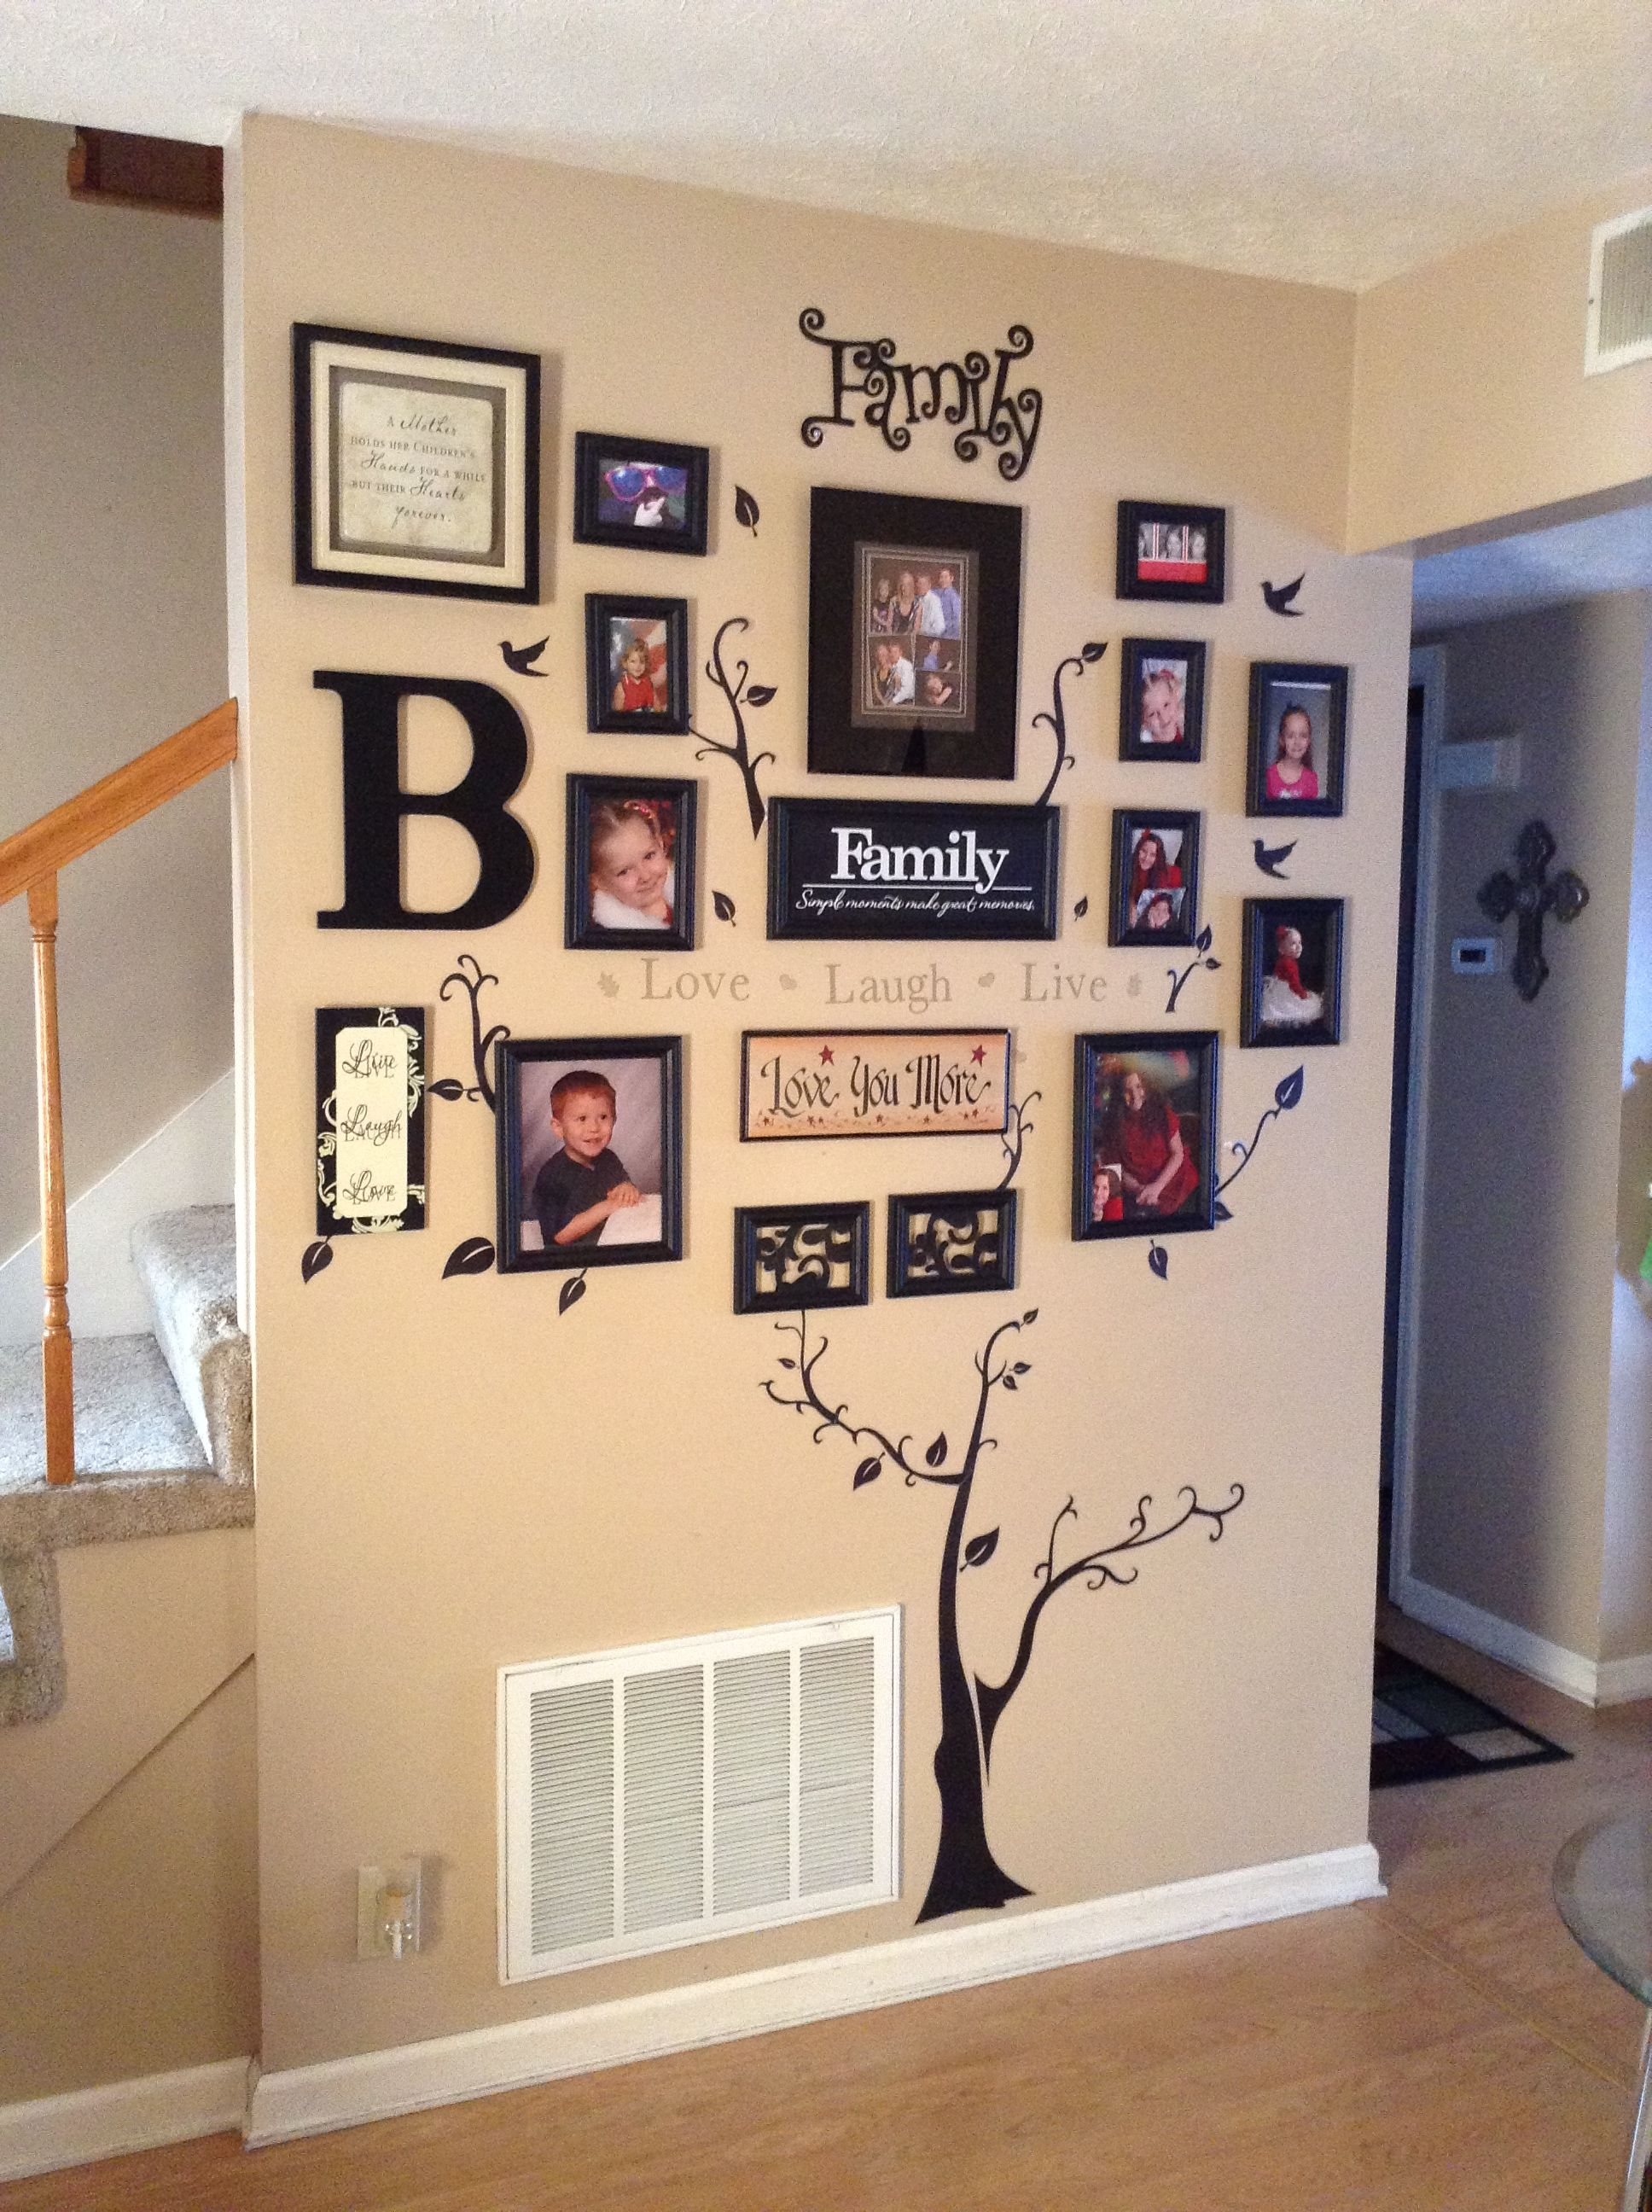 My Family Tree Wall Decor Nicely Done But Wouldn T Make Trunk Larger Or Frames Letter Smaller